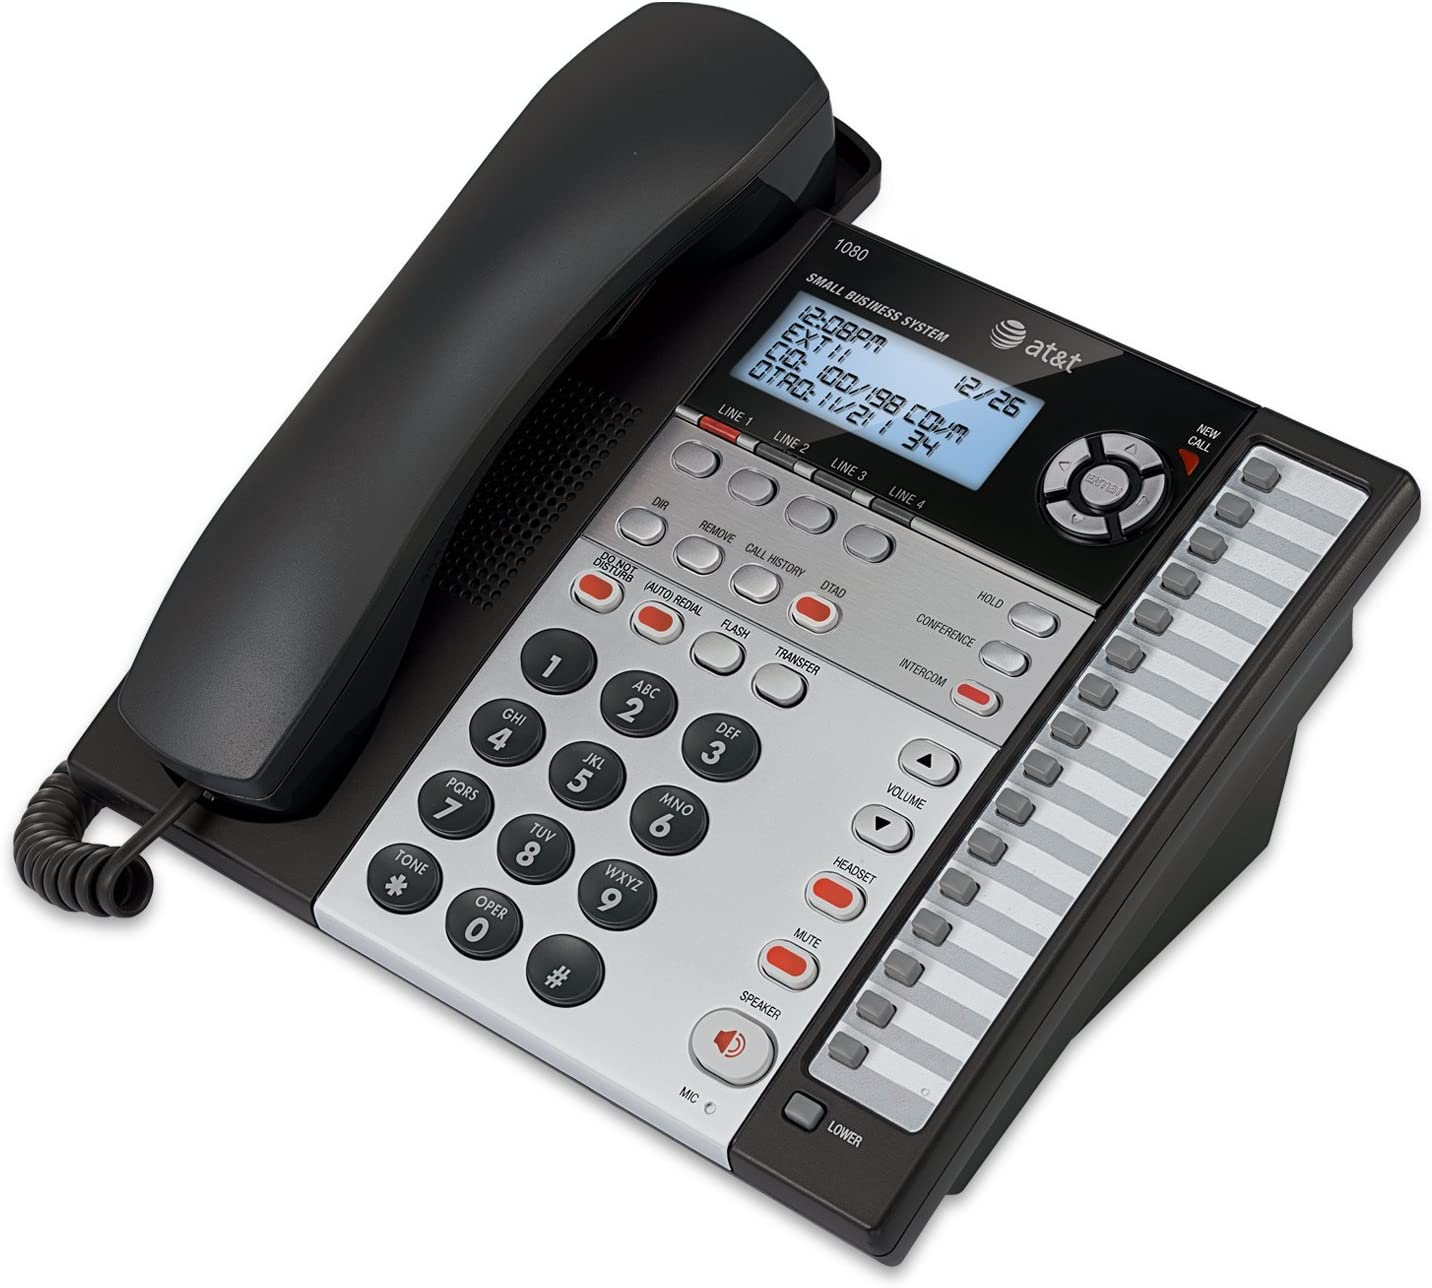 AT&T 1080 4-Line Speakerphone with Answering System and Caller ID